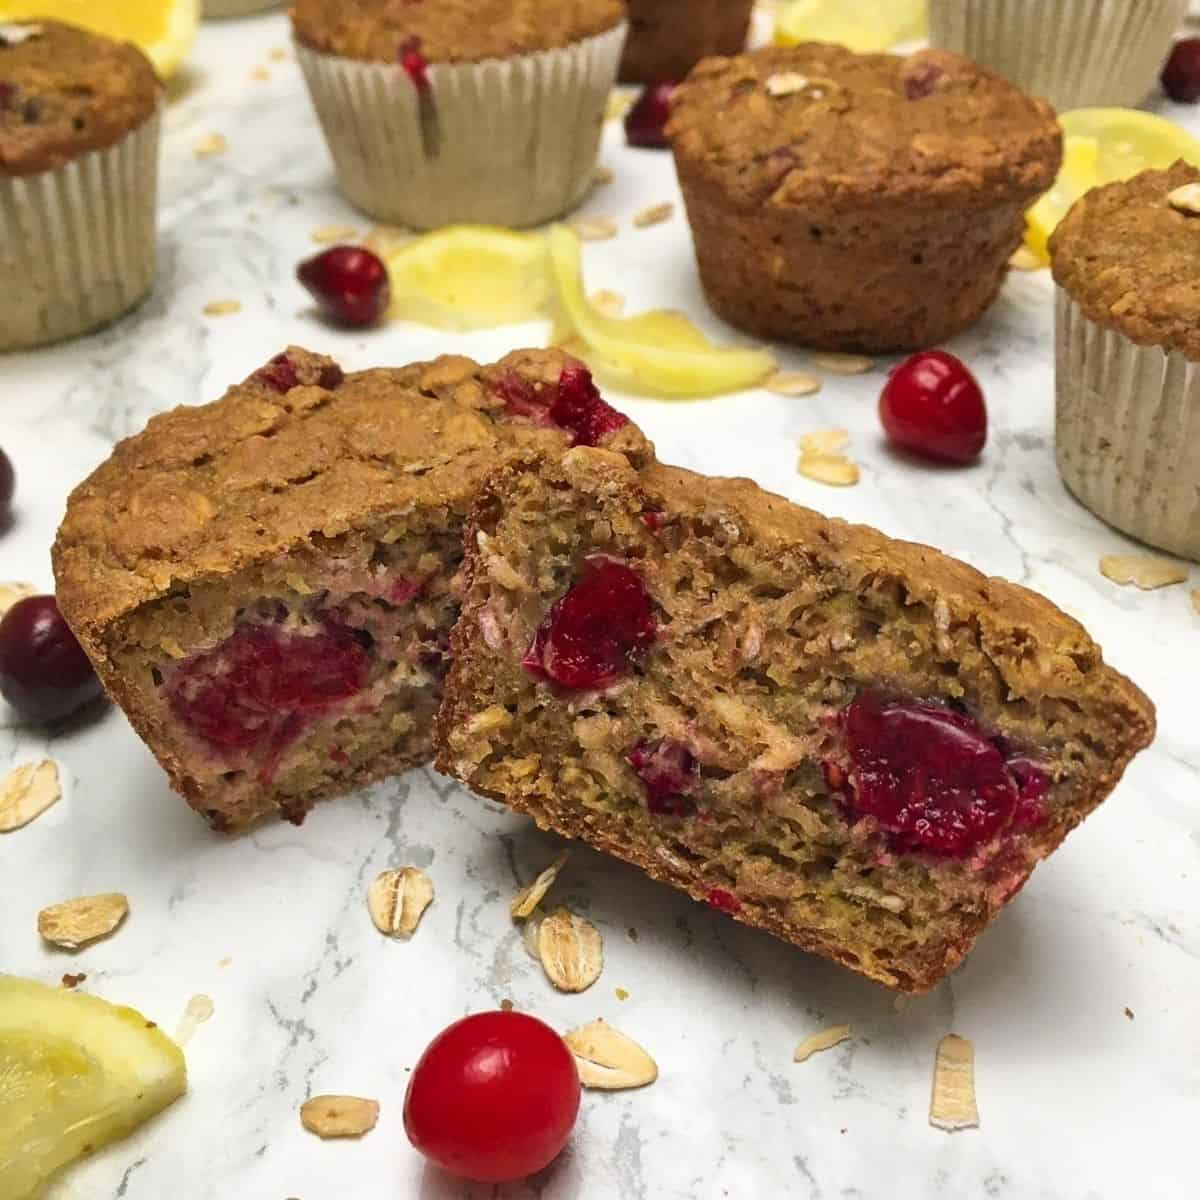 Cranberry muffin sliced in half to expose cranberries inside.